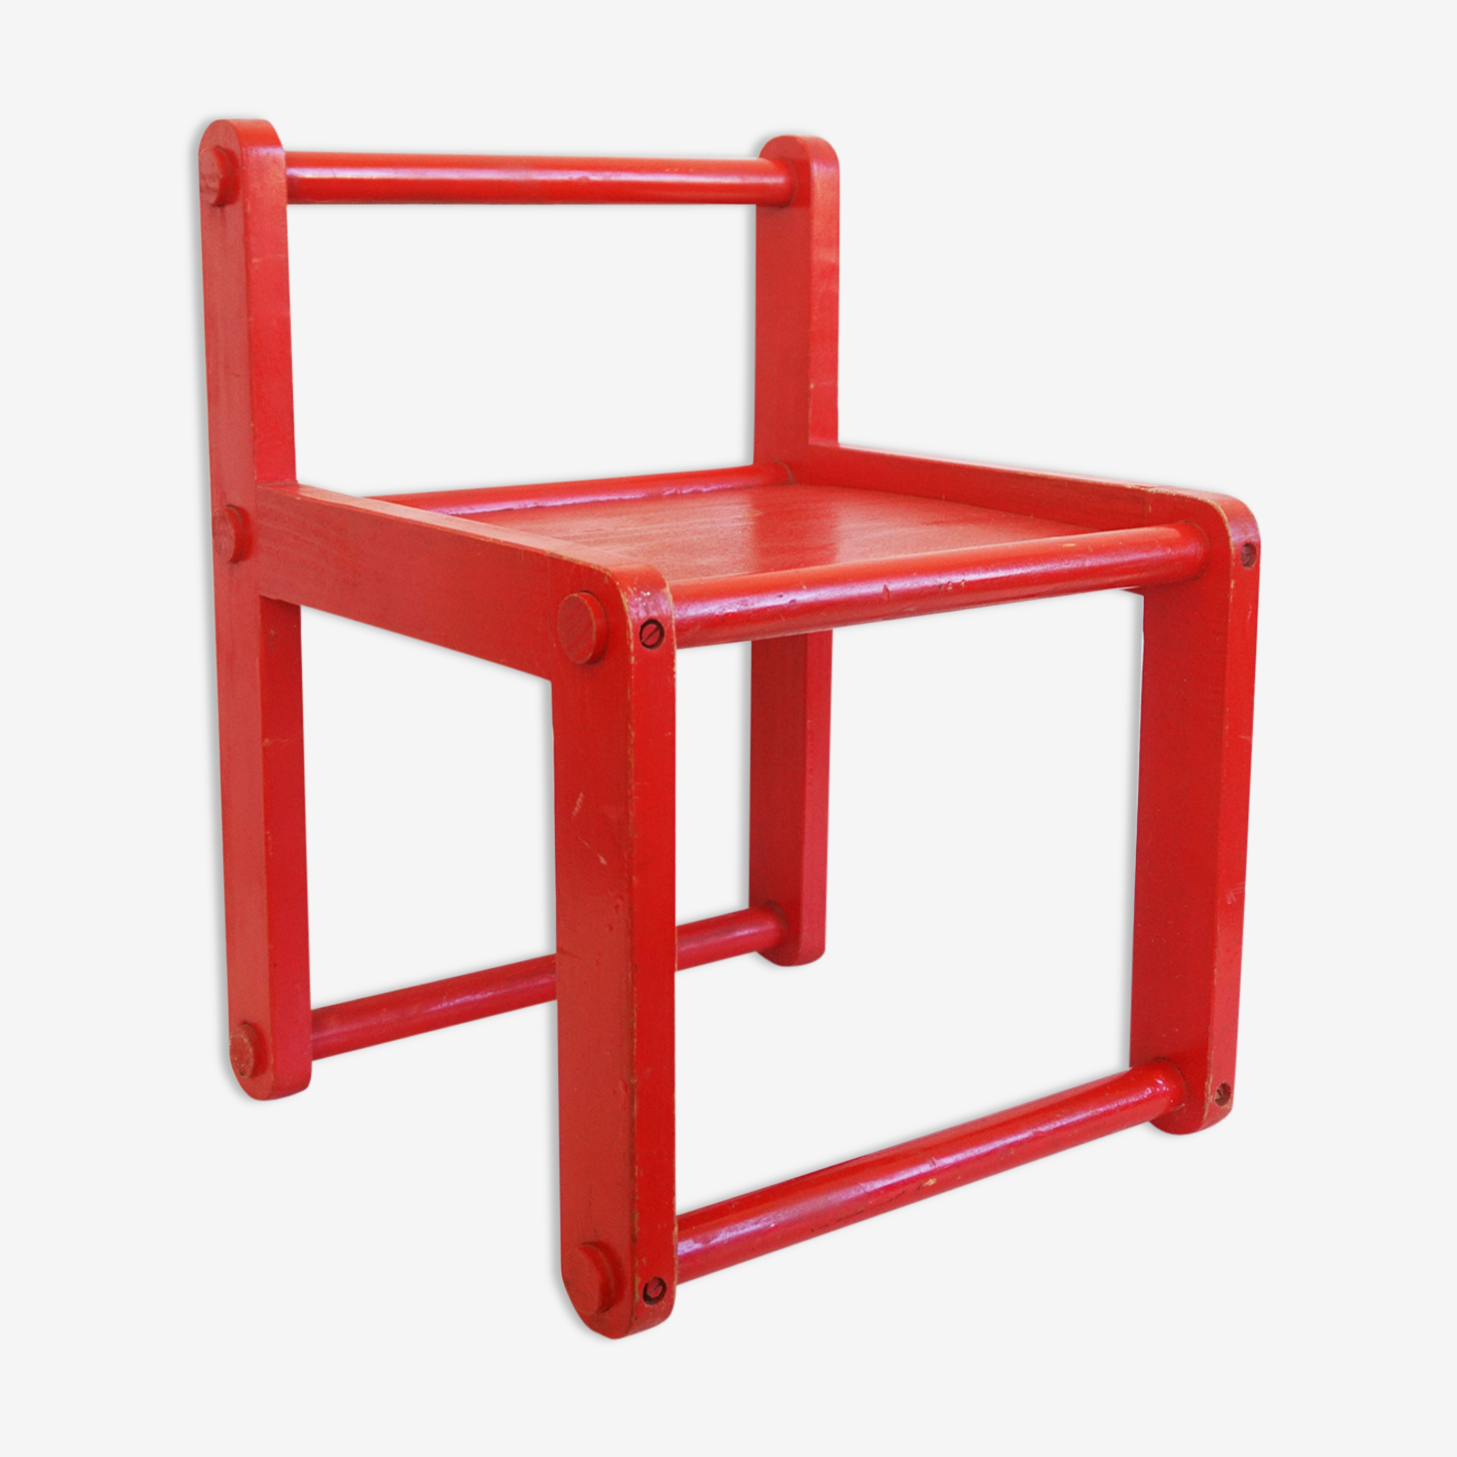 Vintage red wooden child chair